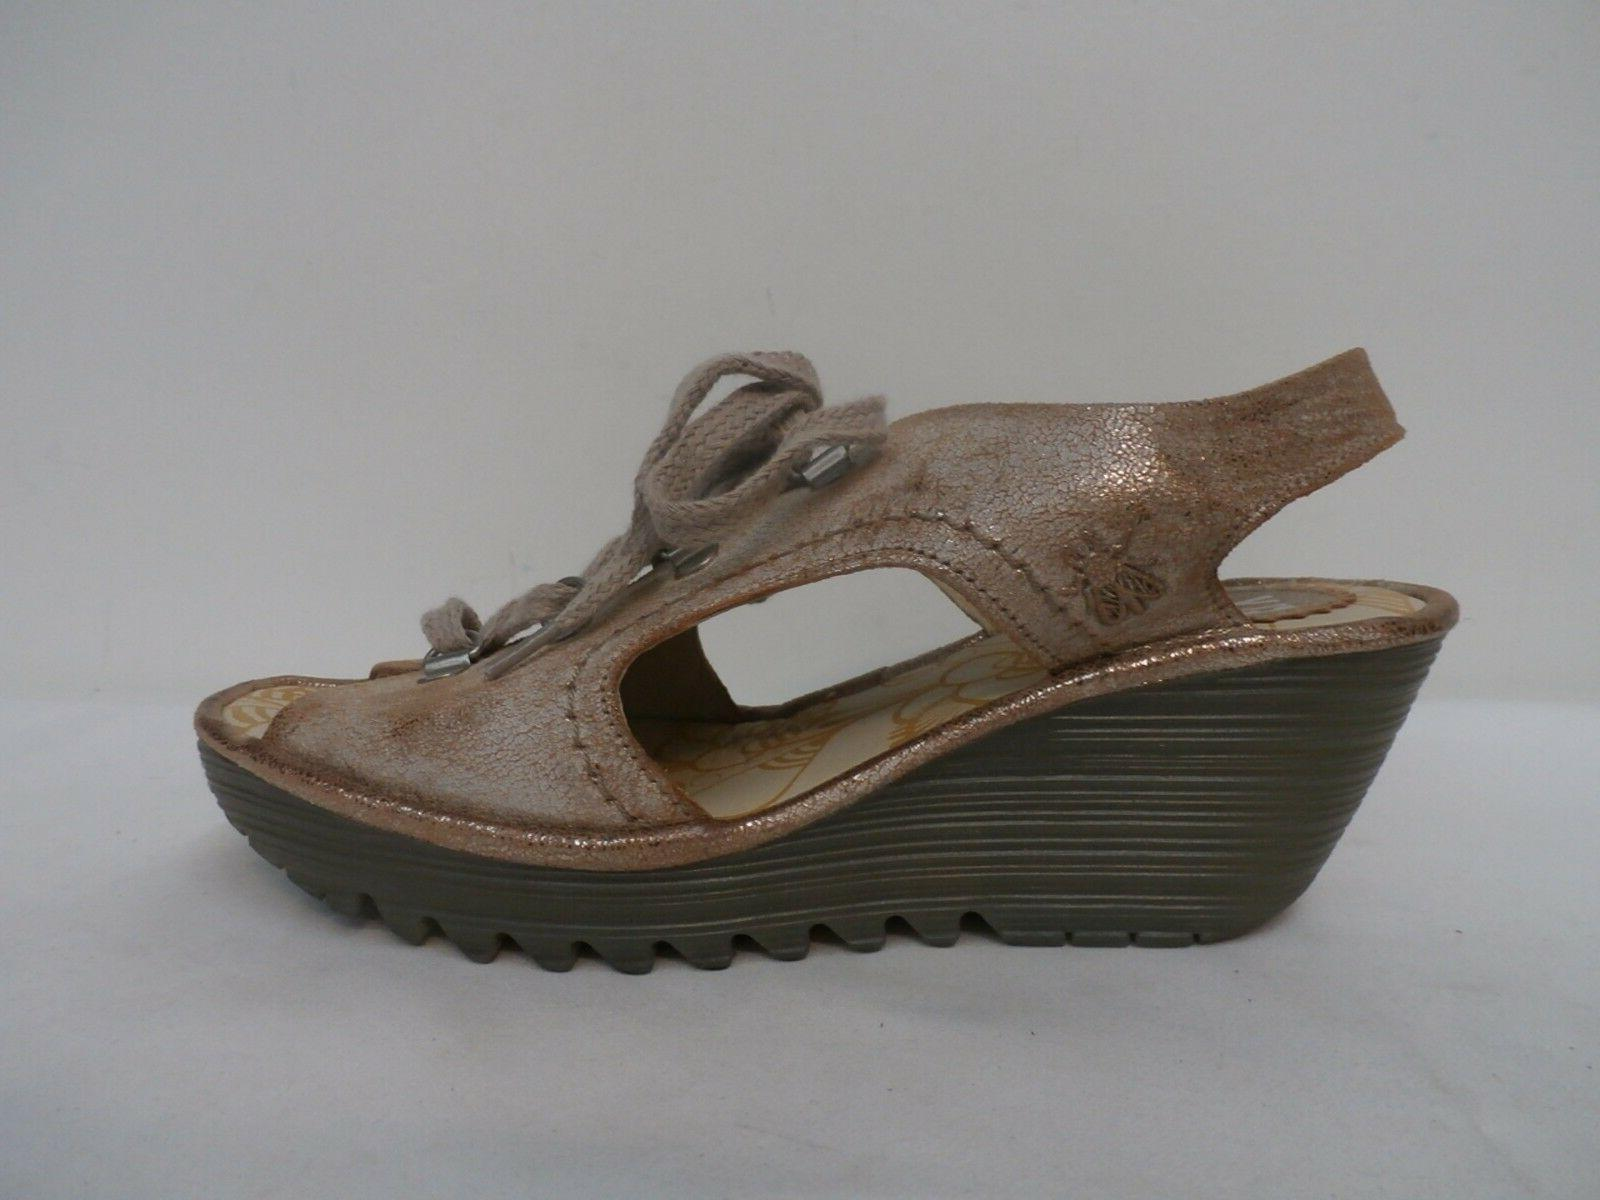 FLY London Leather Lace-Up Wedge Sandals - Ylfa LUNA Size 37